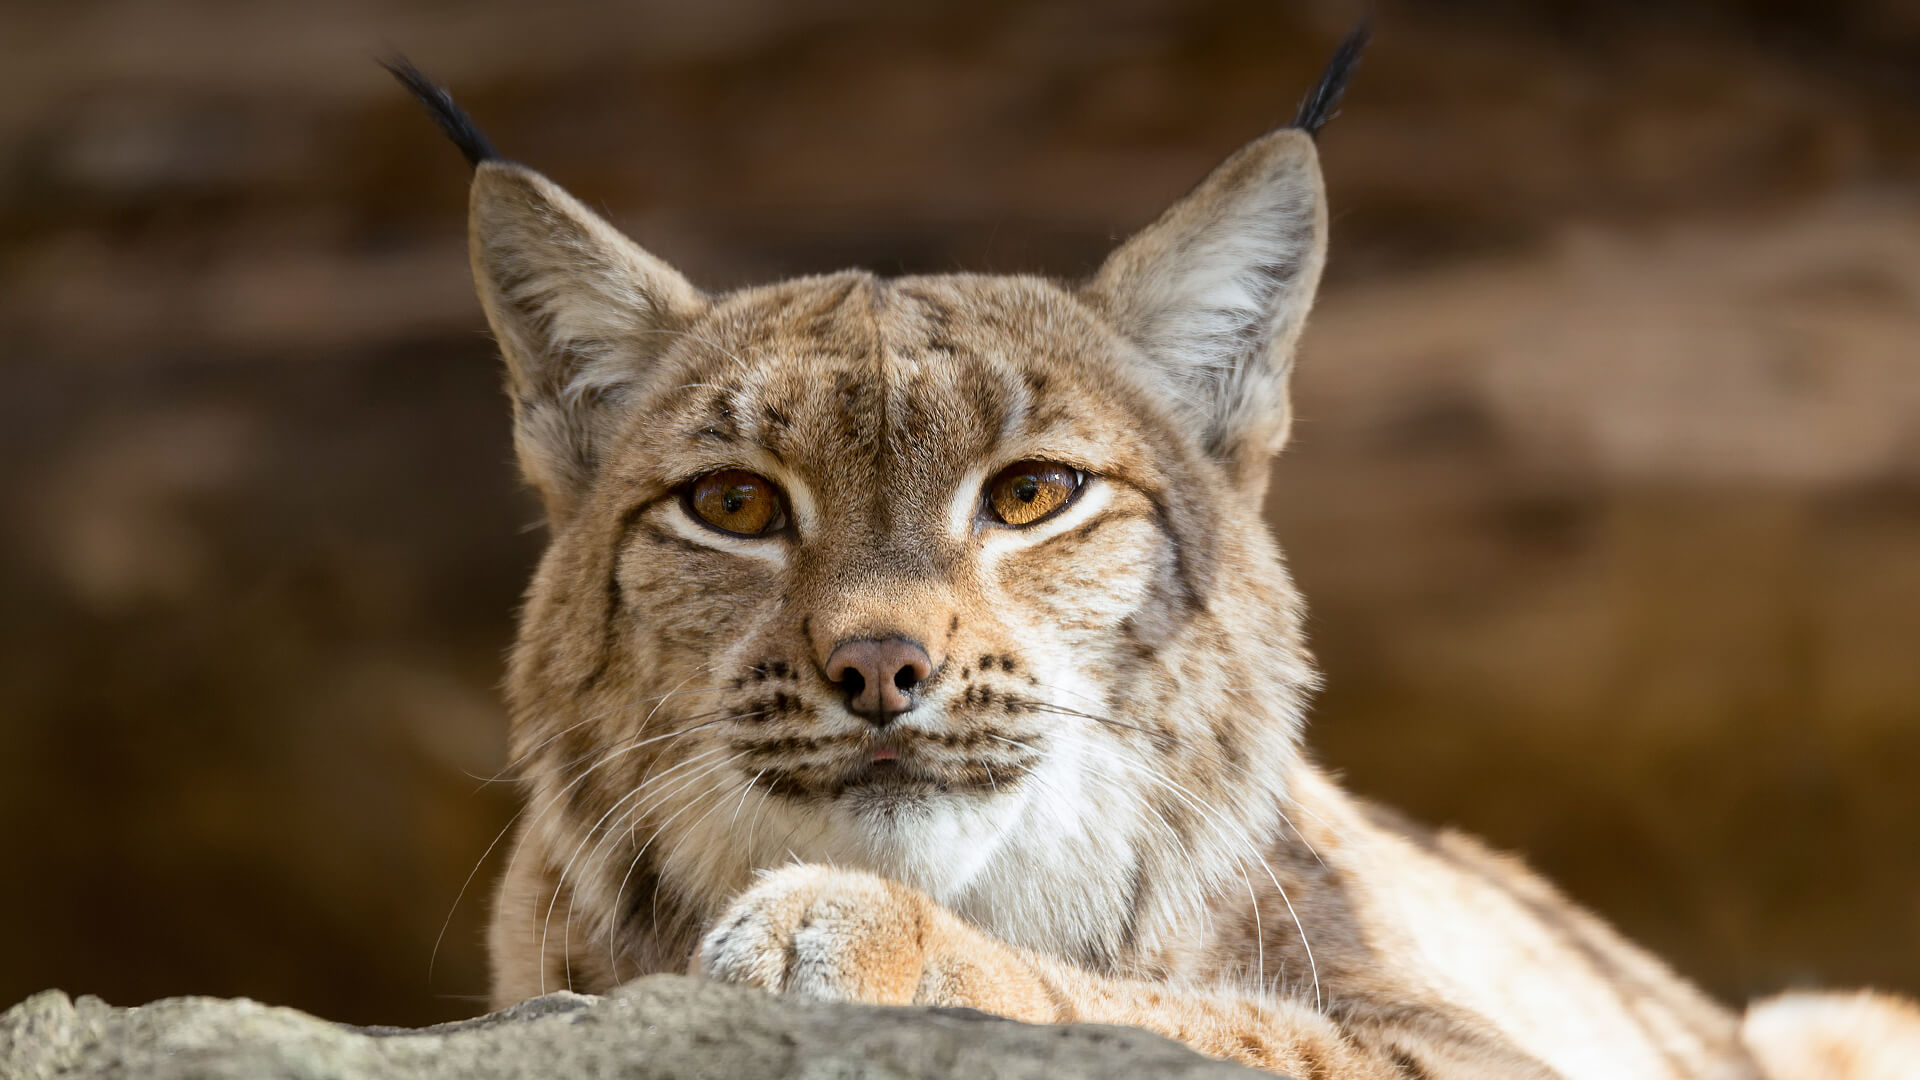 Lynx and bobcat san diego zoo animals plants - Animal 1920x1080 ...